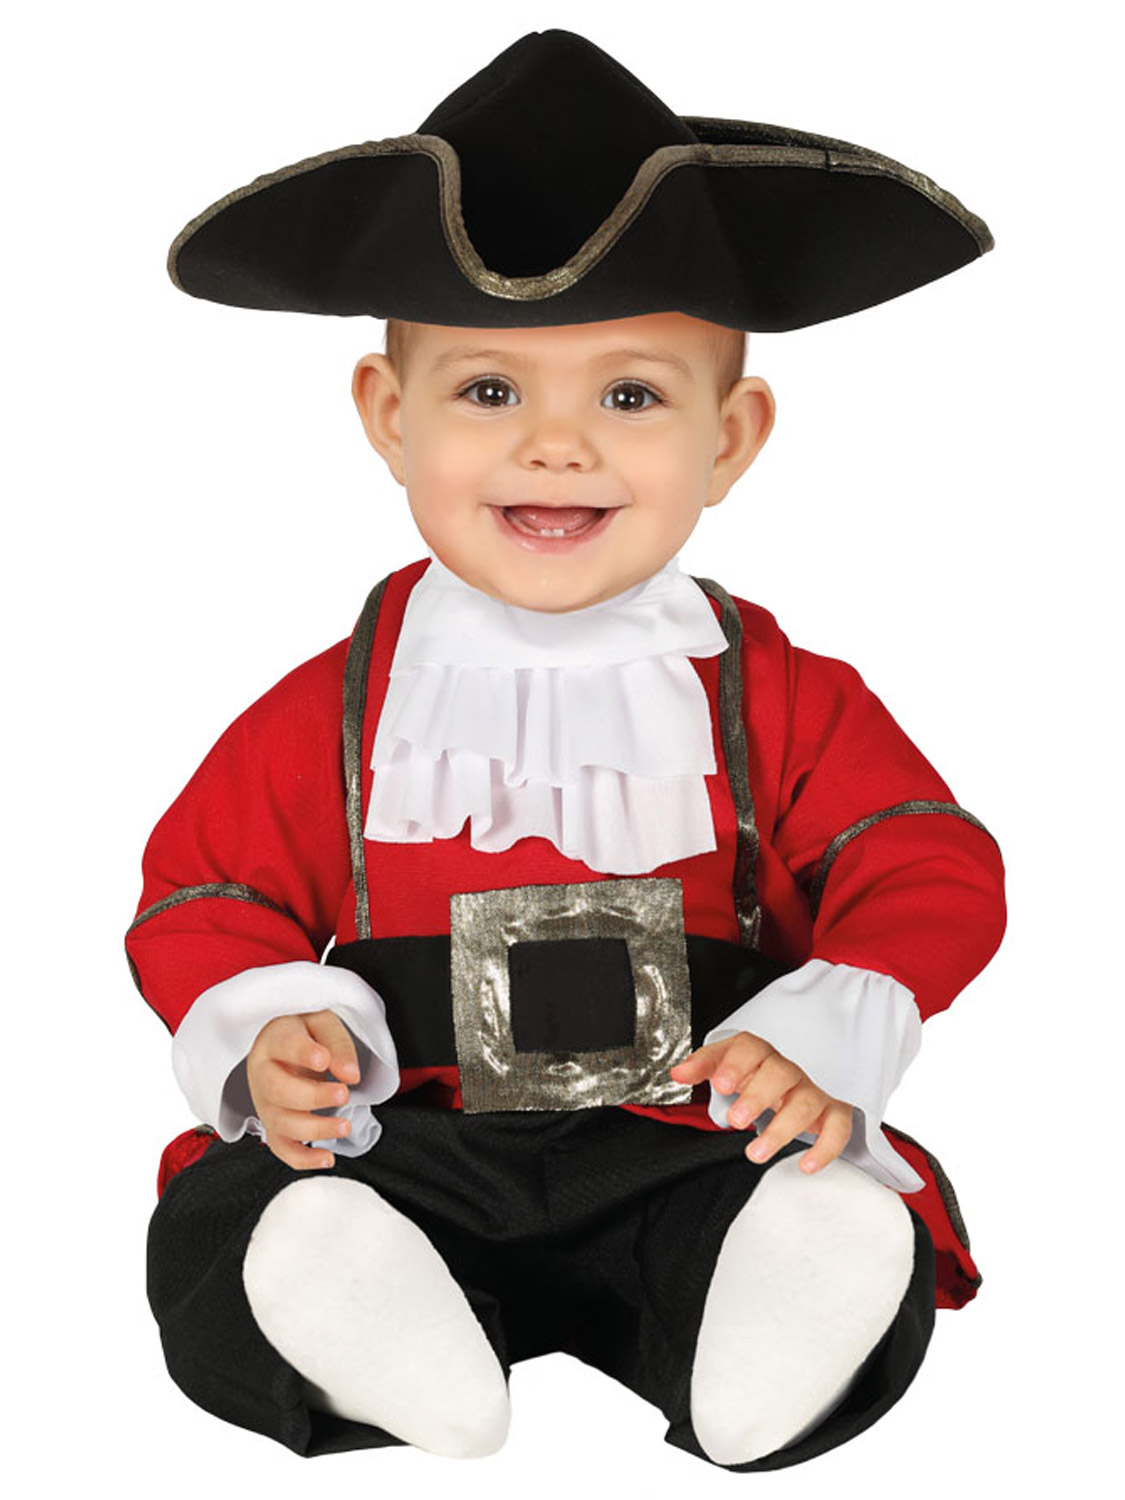 Toddler-Baby-Pirate-Costume-Fancy-Dress-Captain-Crew-Buccaneer-Deckhand-Outfit thumbnail 4